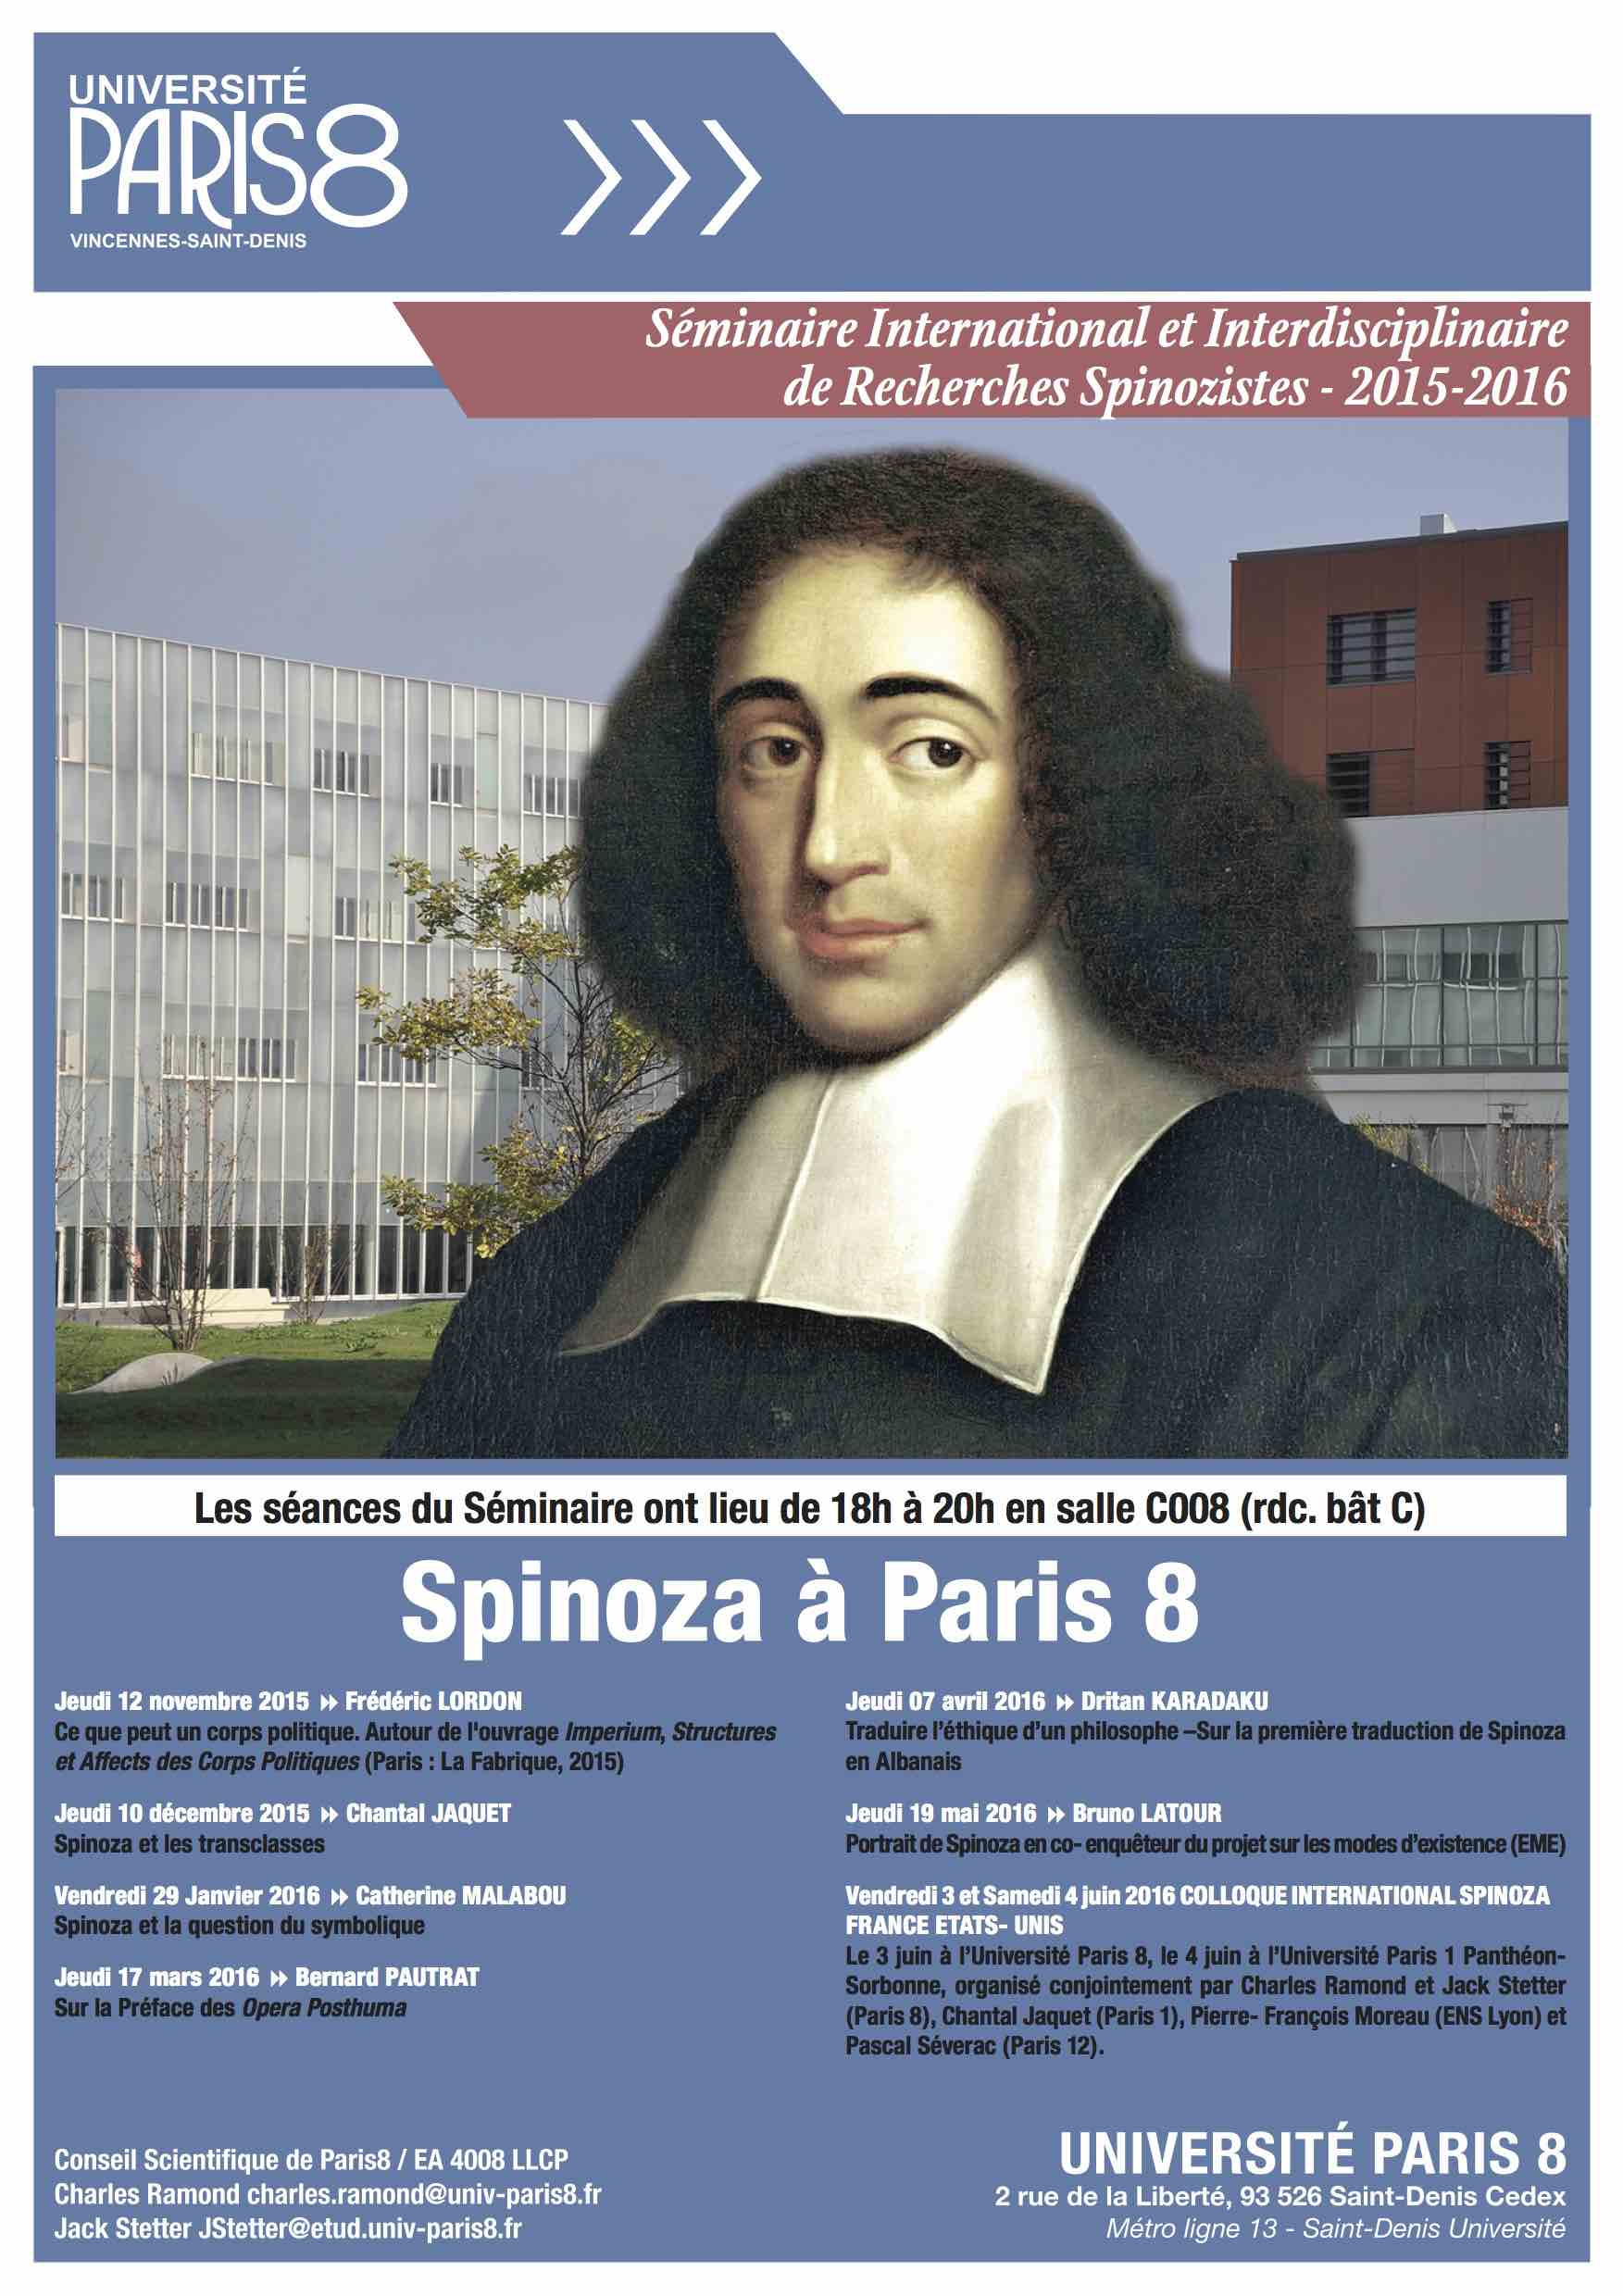 Spinoza à Paris 8